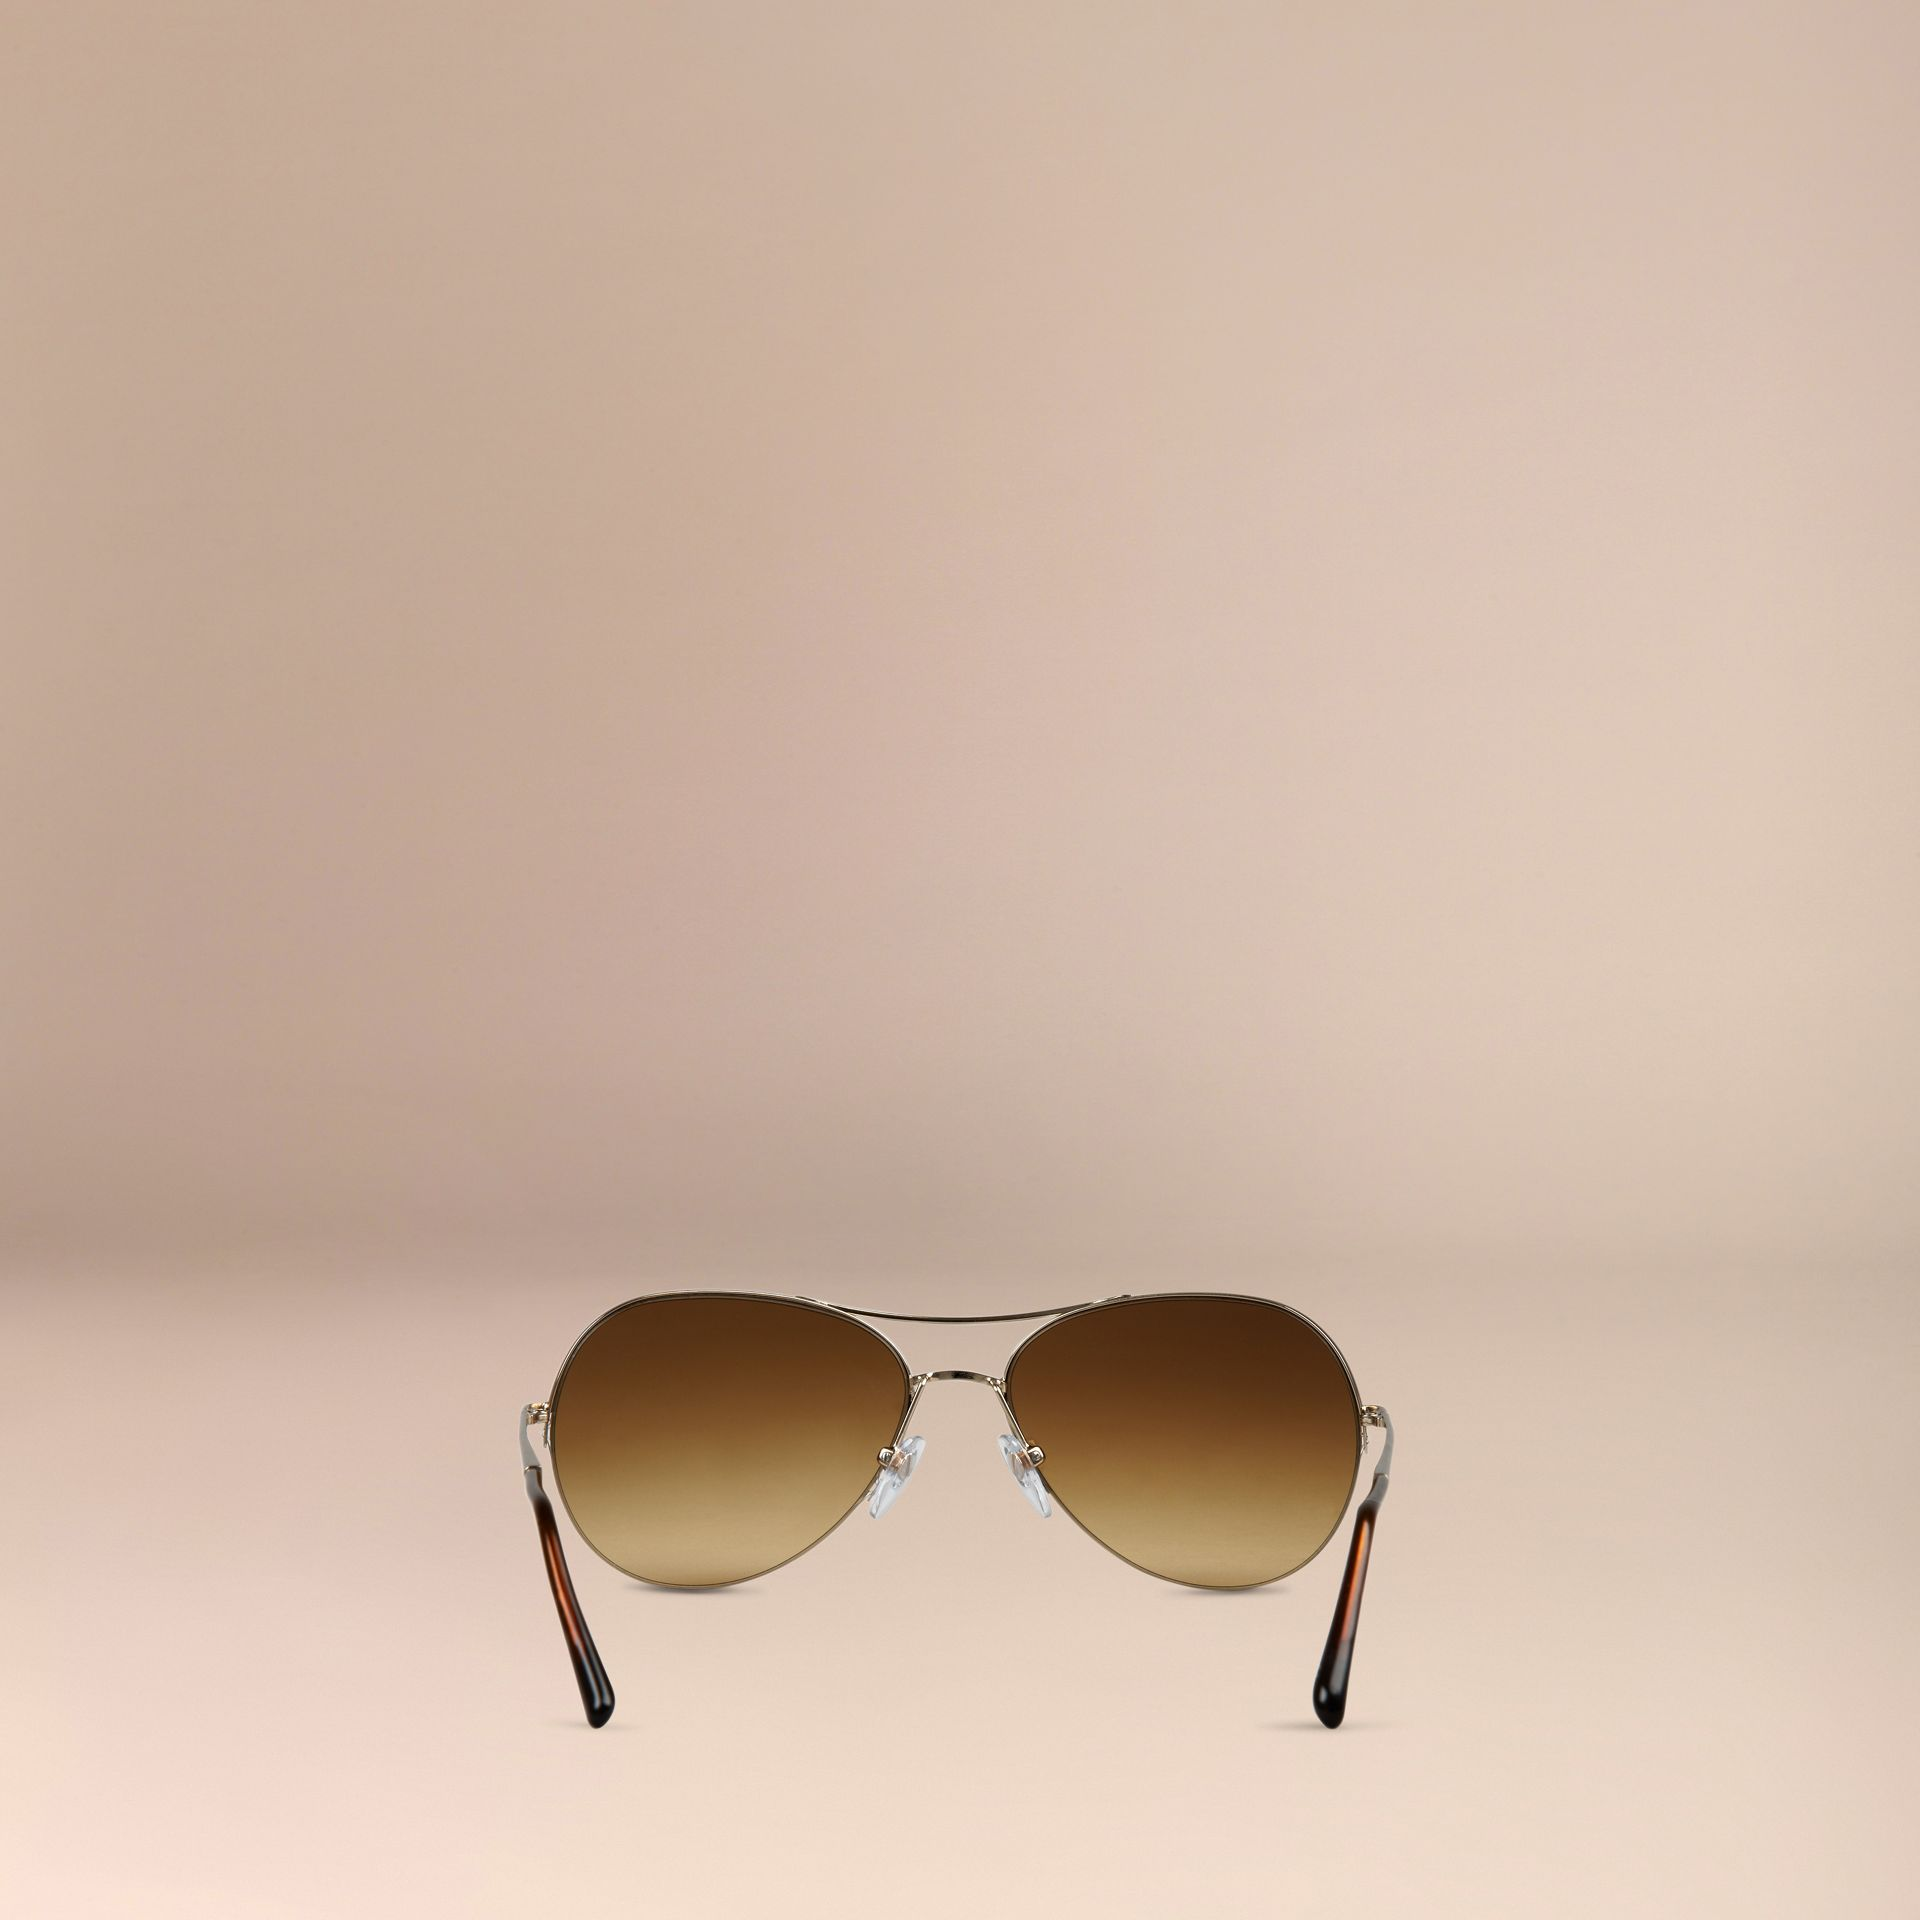 Half-Frame Pilot Sunglasses in Pale Gold - Women | Burberry Australia - gallery image 3